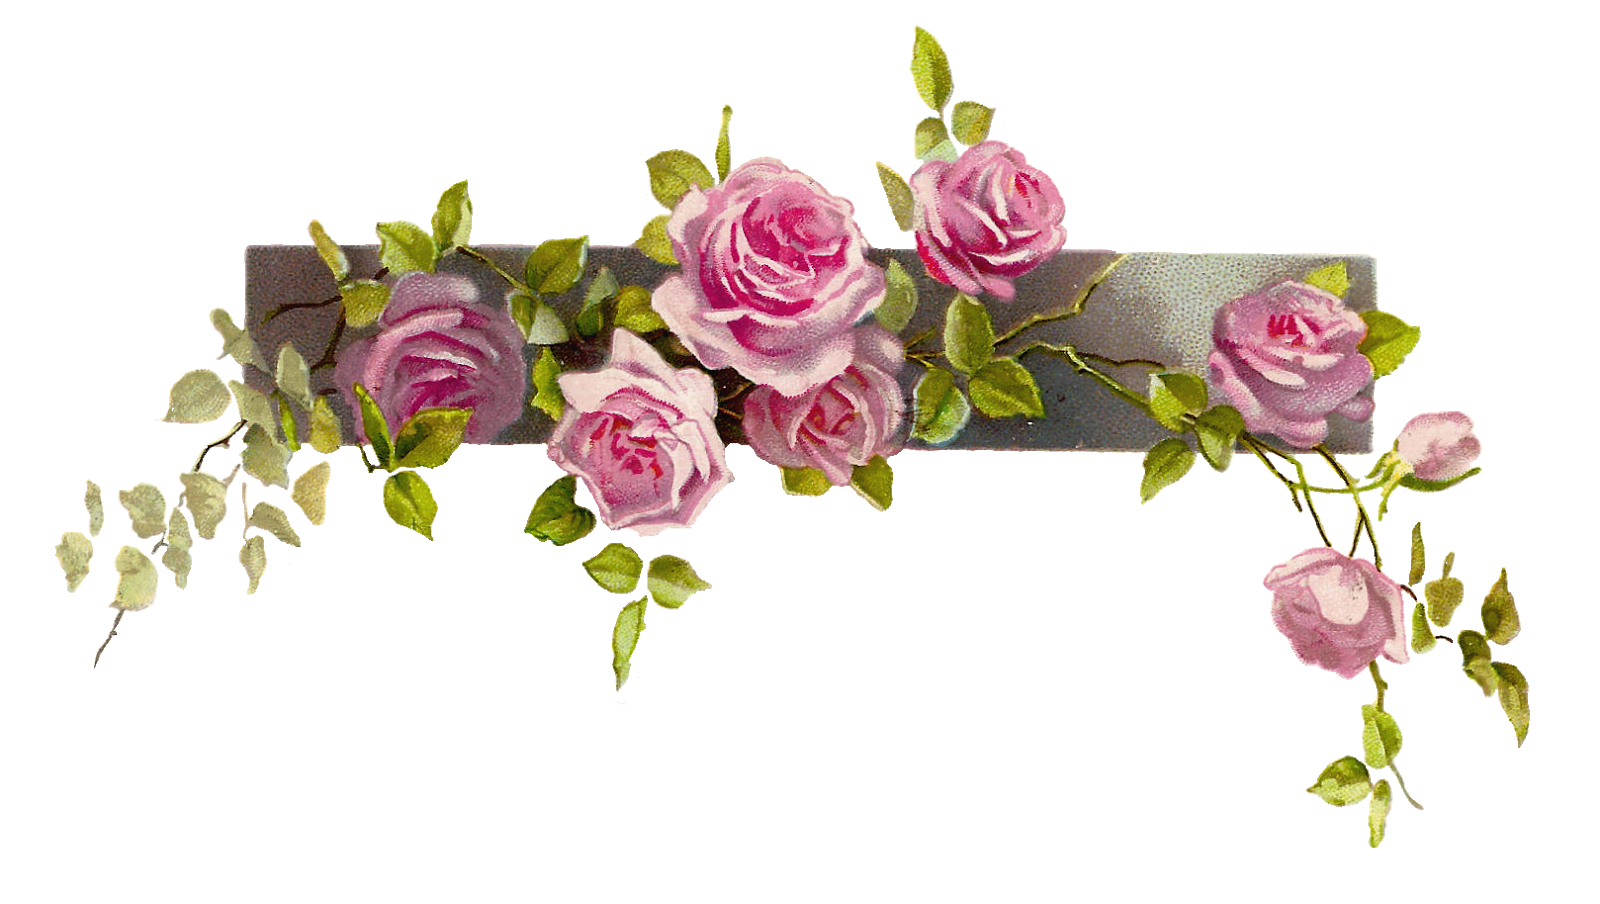 Flower line png. Graphic vintage pink rose